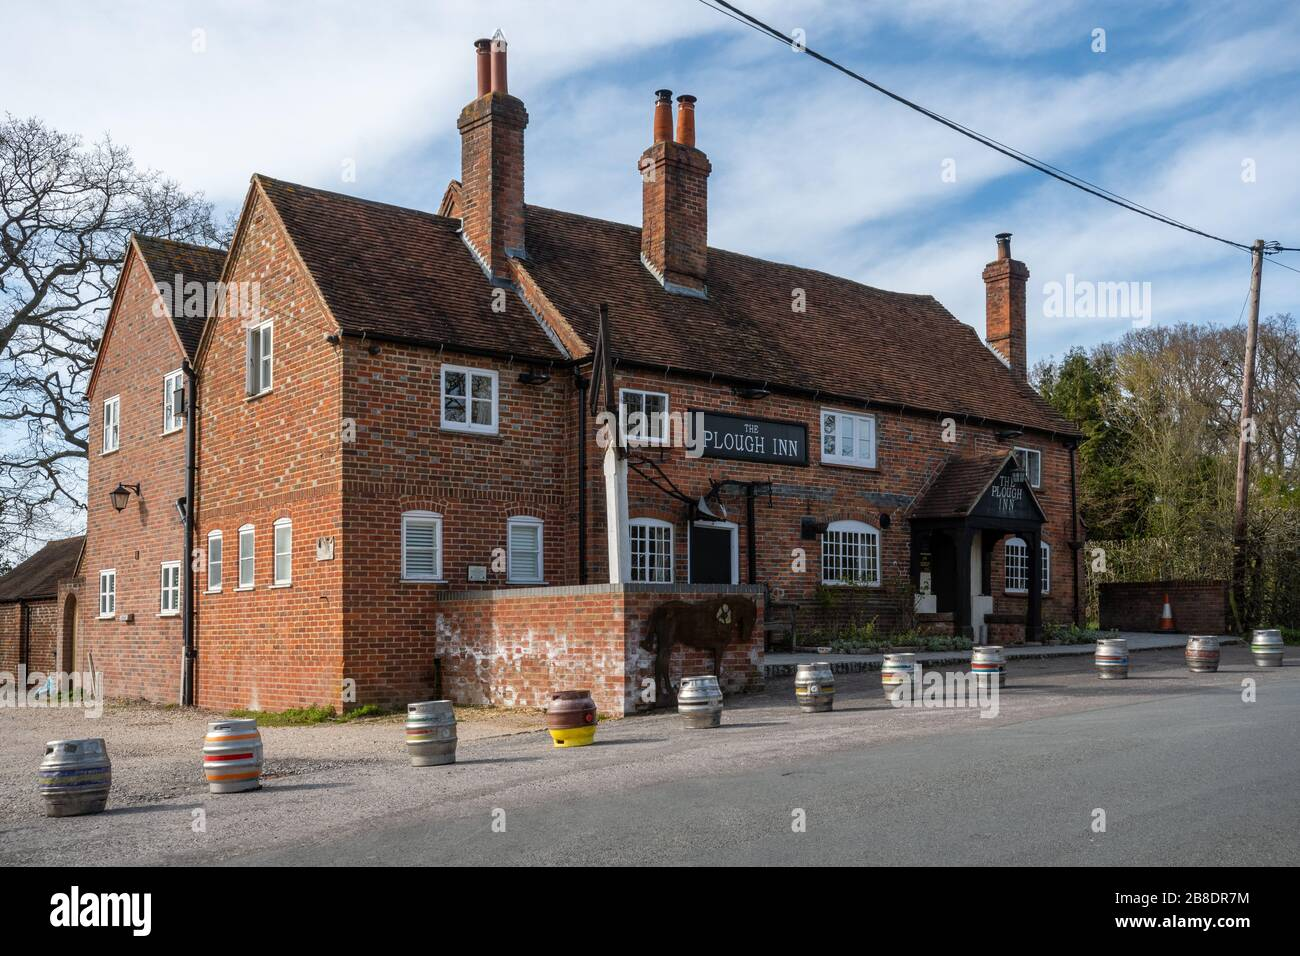 english-pub-closed-due-to-the-covid-19-coronavirus-pandemic-with-beer-kegs-lined-up-in-front-the-plough-inn-village-of-little-london-hampshire-uk-2B8DR7M.jpg